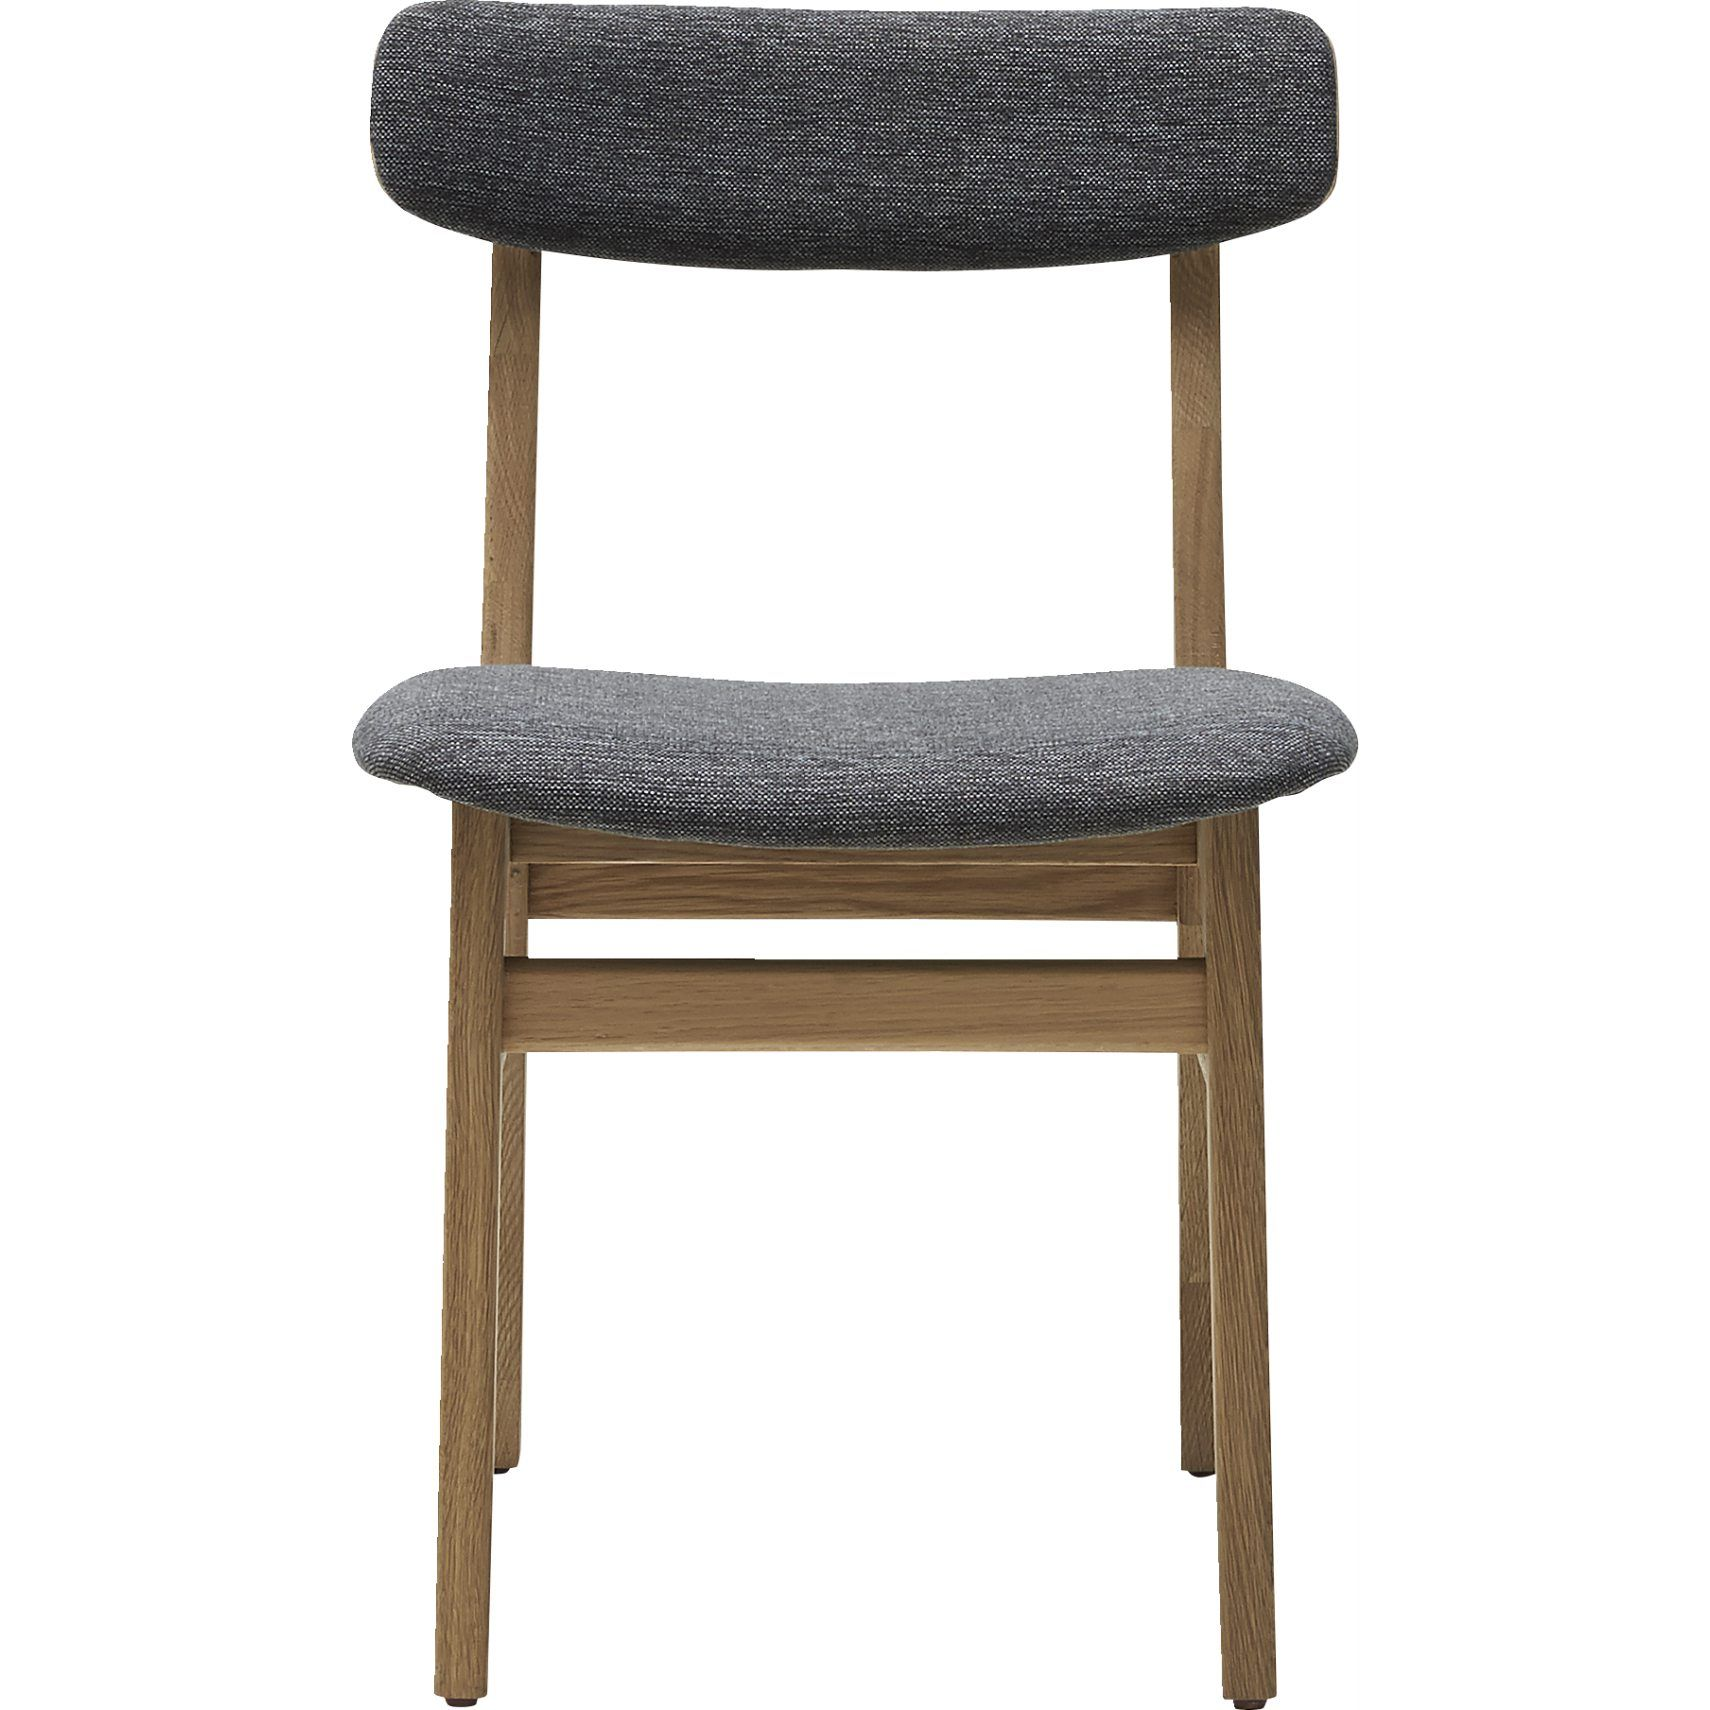 MADDOX Chair From Idemøbler